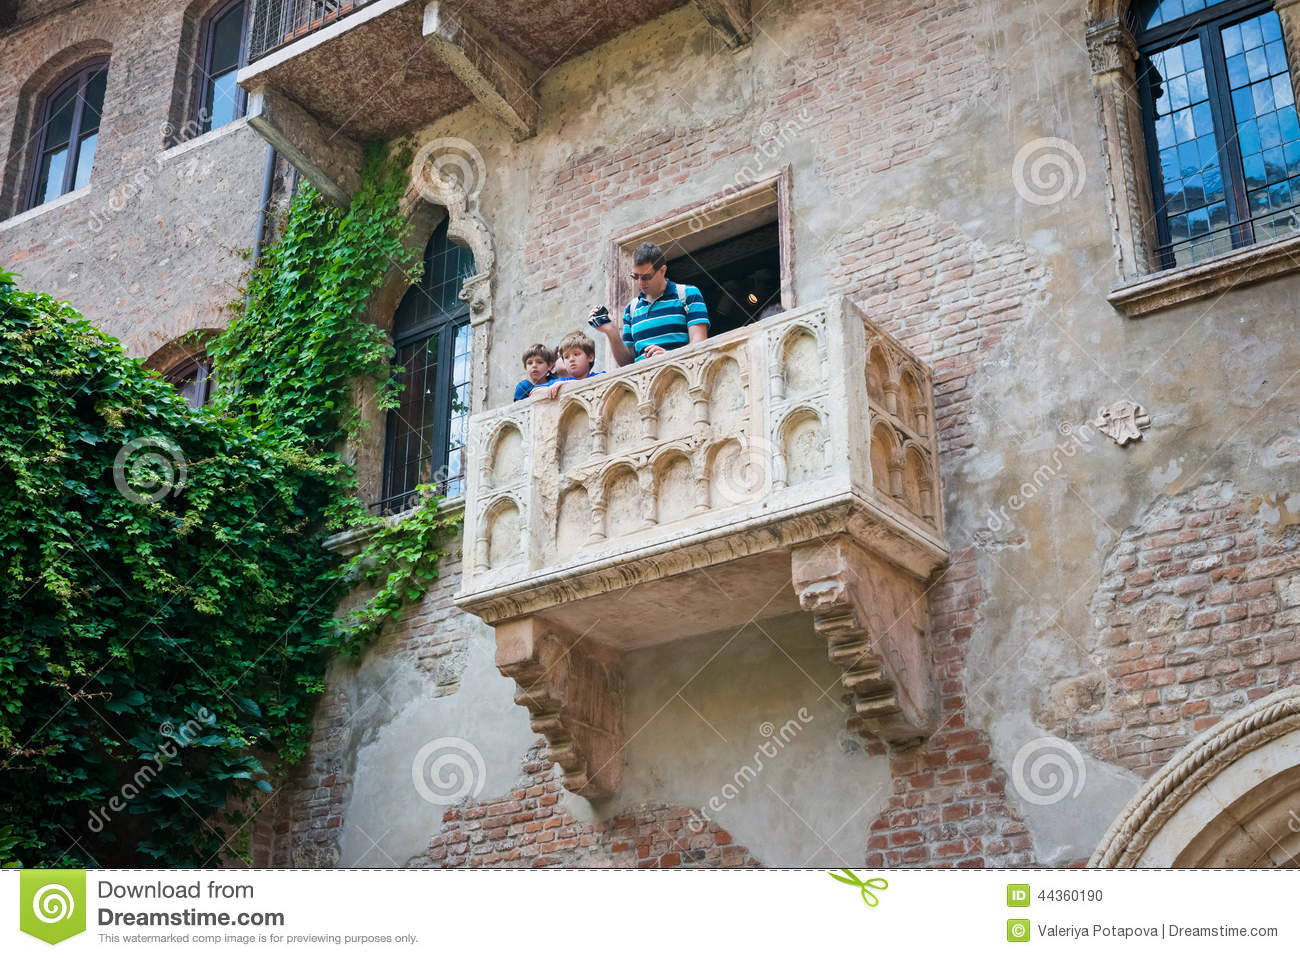 Balcony of juliet with turists in verona editorial image - i.